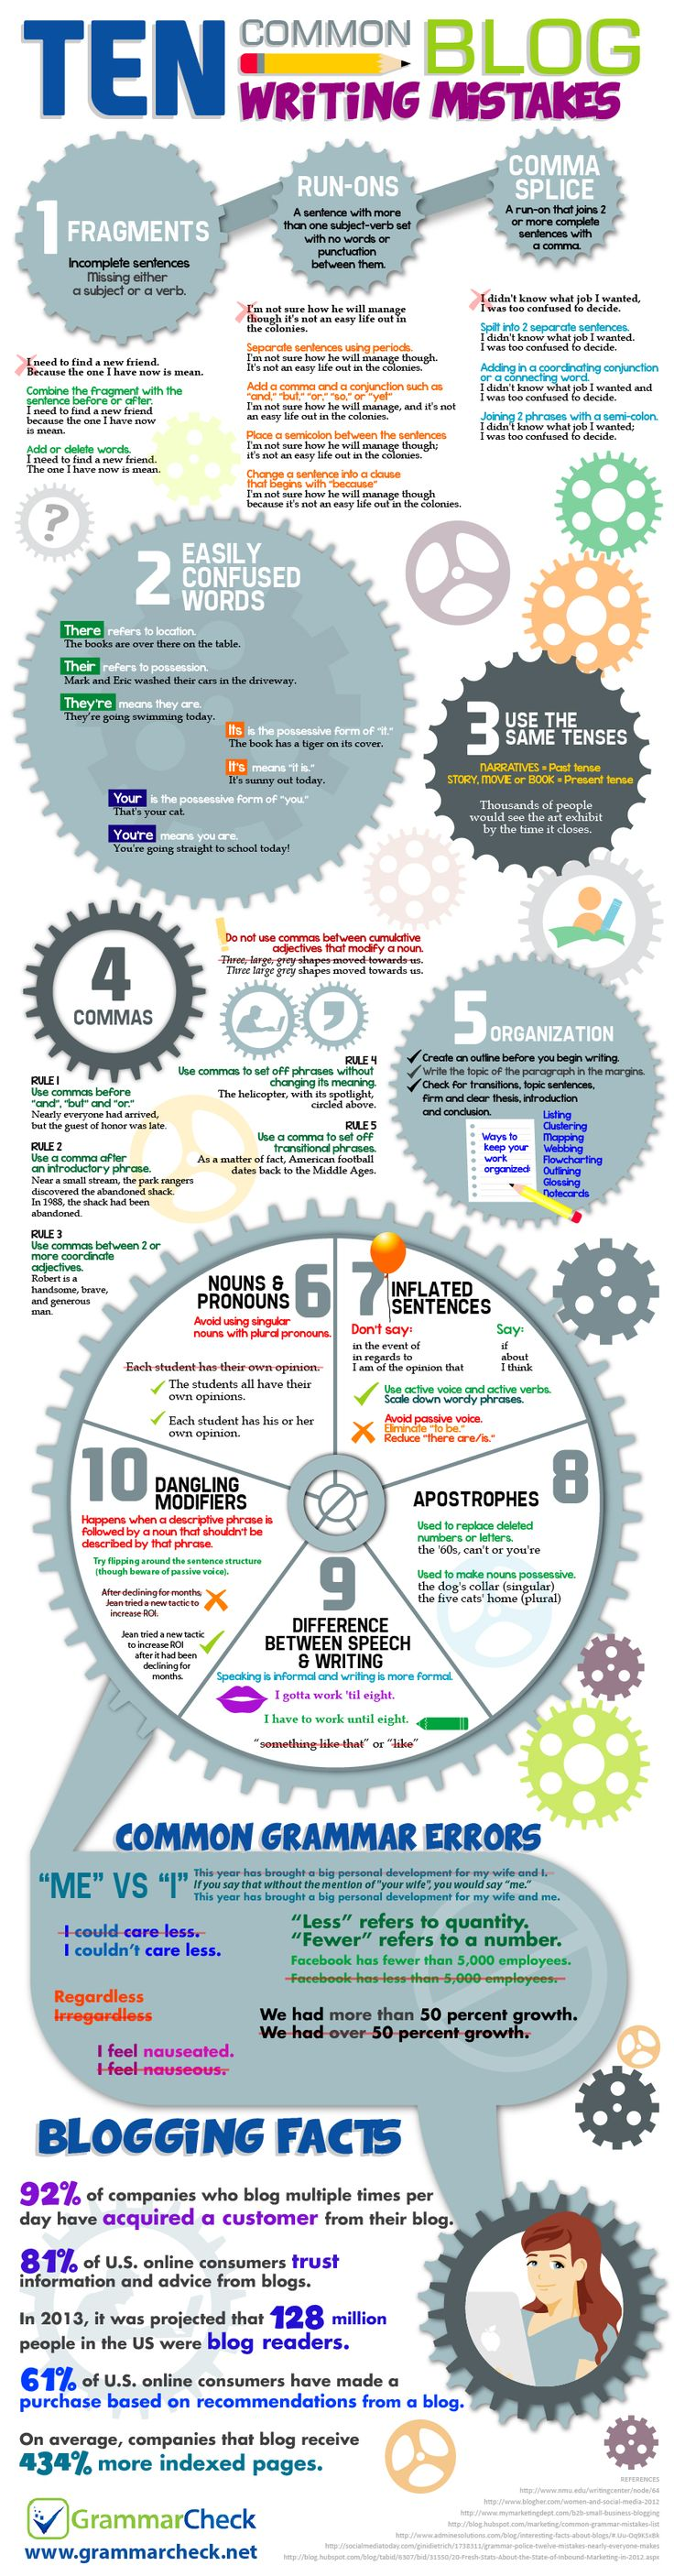 Ten Common Blog Writing Mistakes Infographic